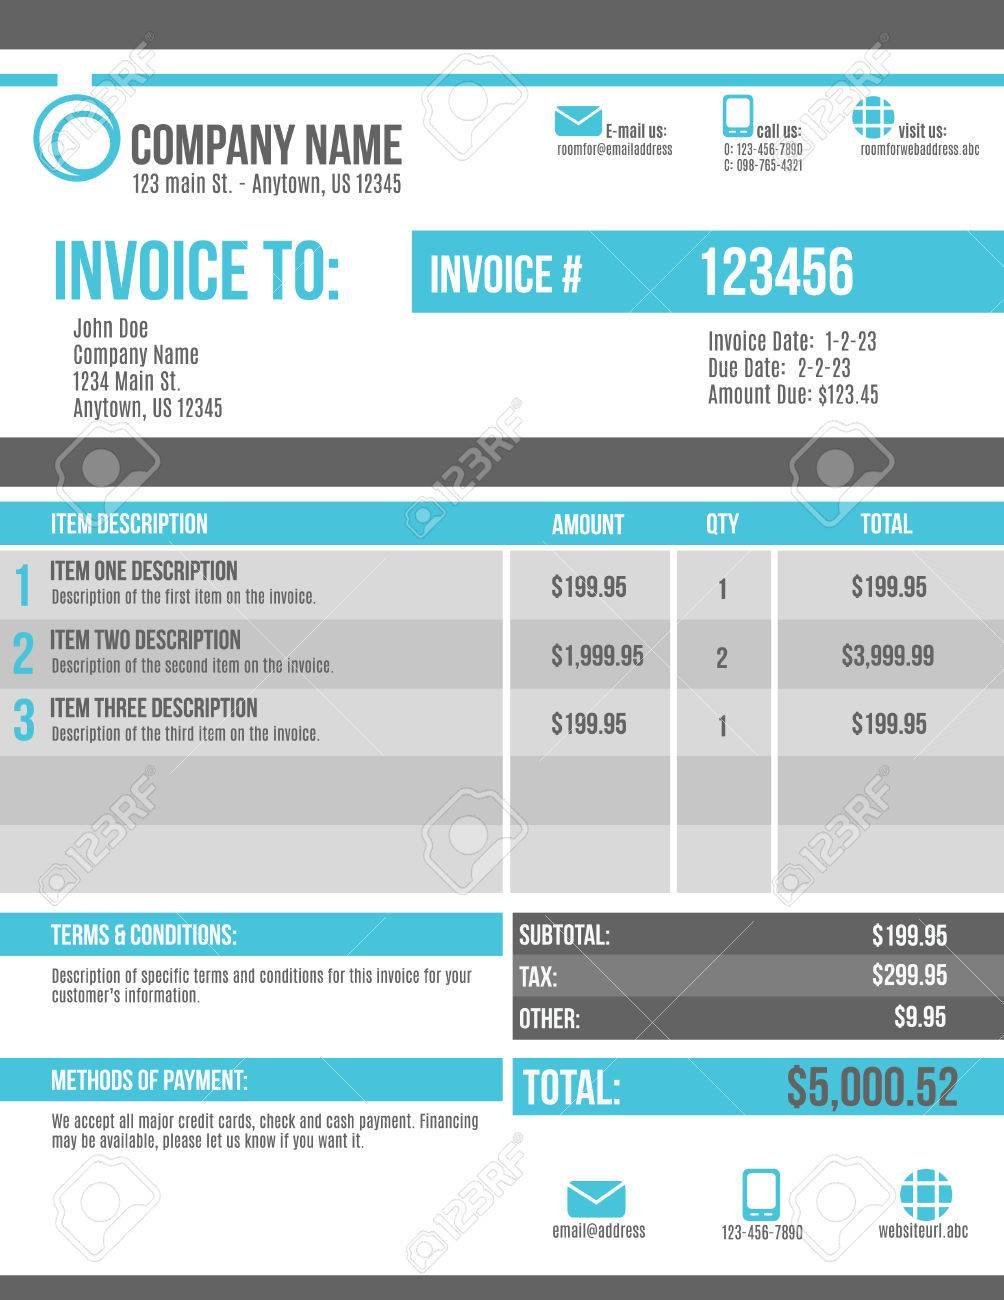 customizable invoice template design royalty free cliparts, Invoice examples